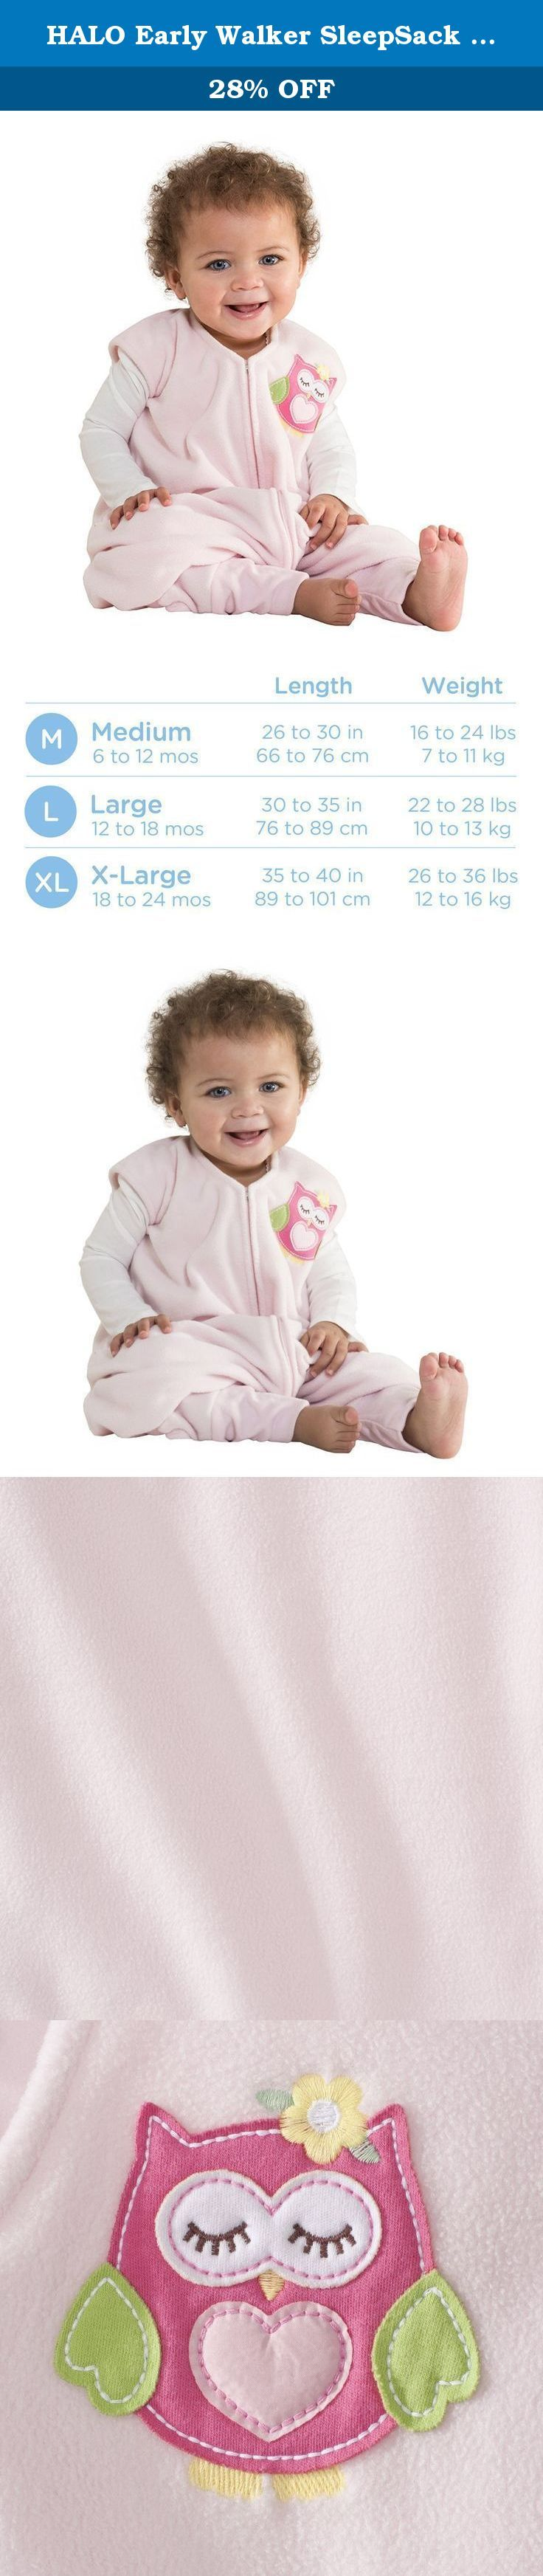 HALO Early Walker SleepSack Micro Fleece Wearable Blanket Pink, Large. HALO SleepSack Early Walker: Helps babies and toddlers sleep safe and sound. The HALO SleepSack Early Walker replaces loose blankets in the crib that can cover your baby's face and interfere with breathing. With its unique foot openings, the SleepSack Early Walker wearable blanket allows for greater mobility while babies are awake, but also keeps little feet covered and warm while sleeping. In addition to helping your...